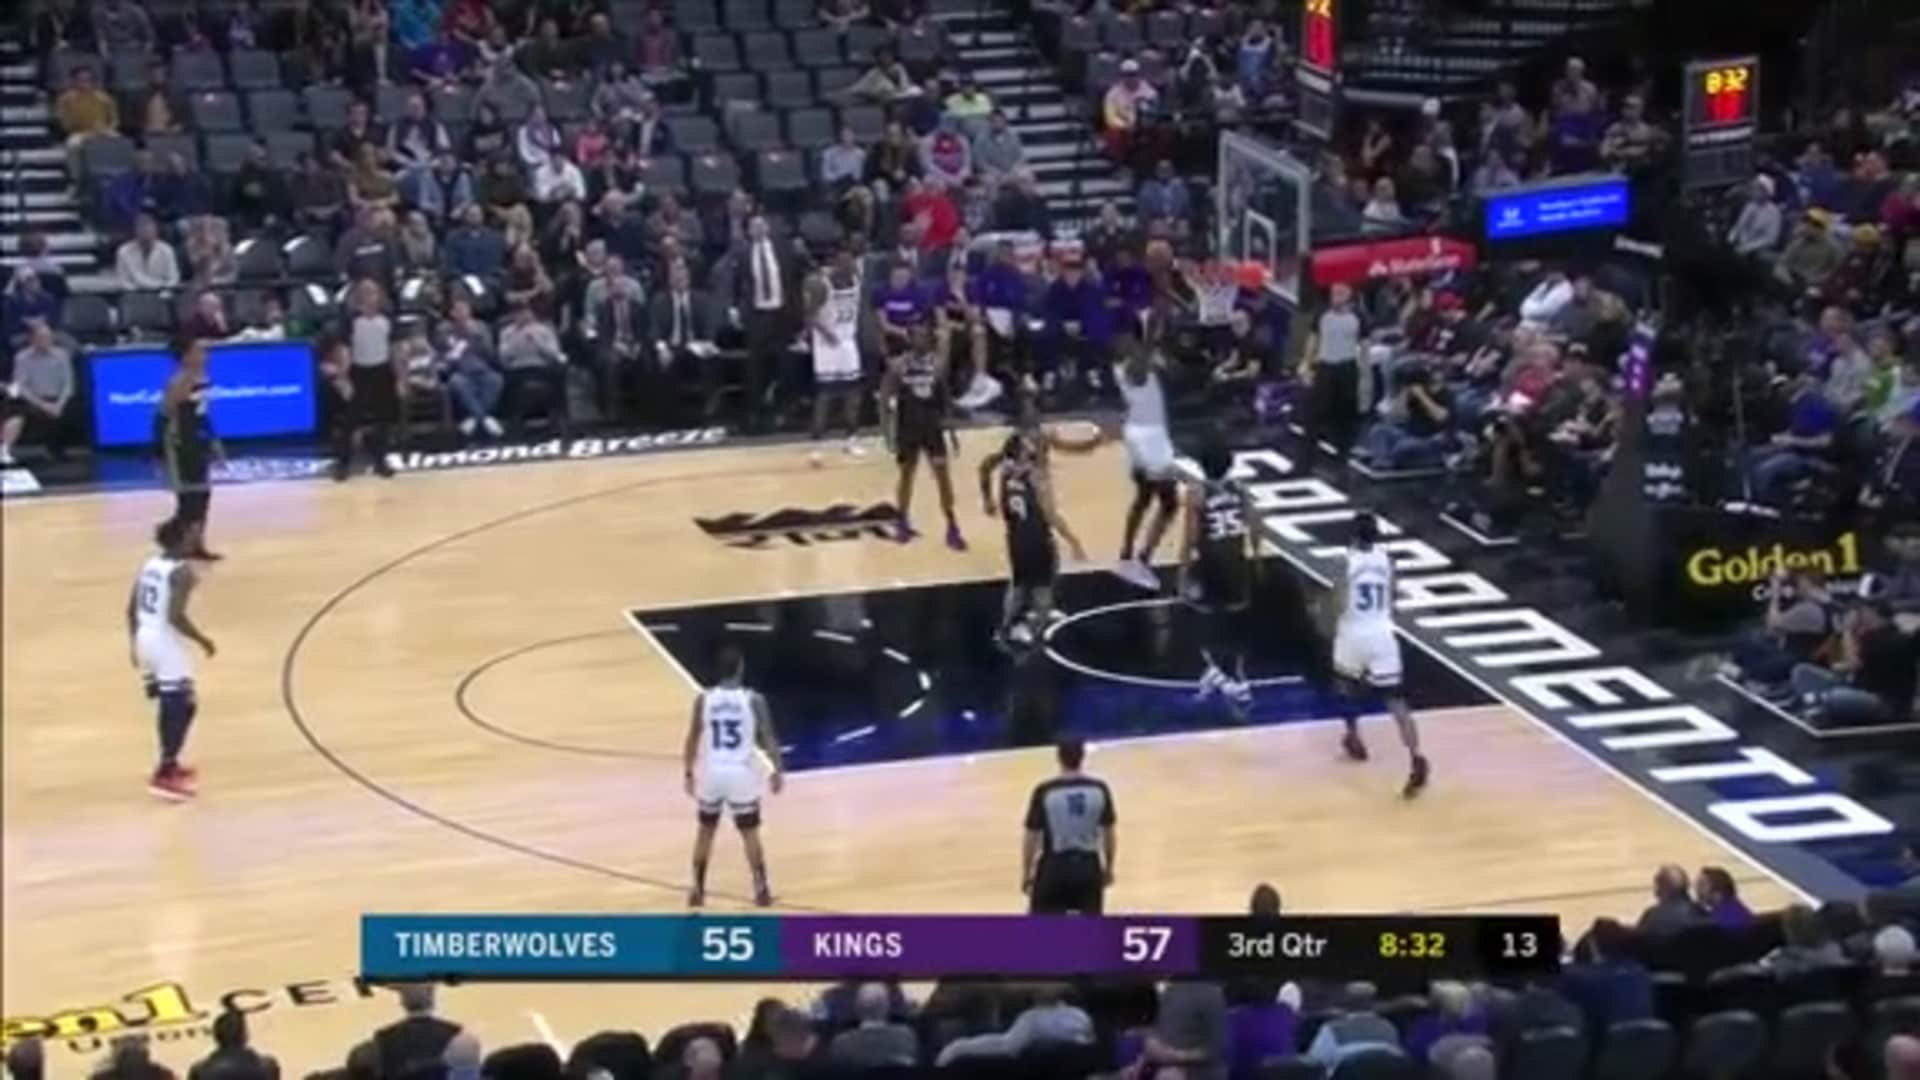 Highlights | Gorgui Dieng 21 Points, 15 Rebounds, 2 Steals, One Block at Kings (12.26.19)